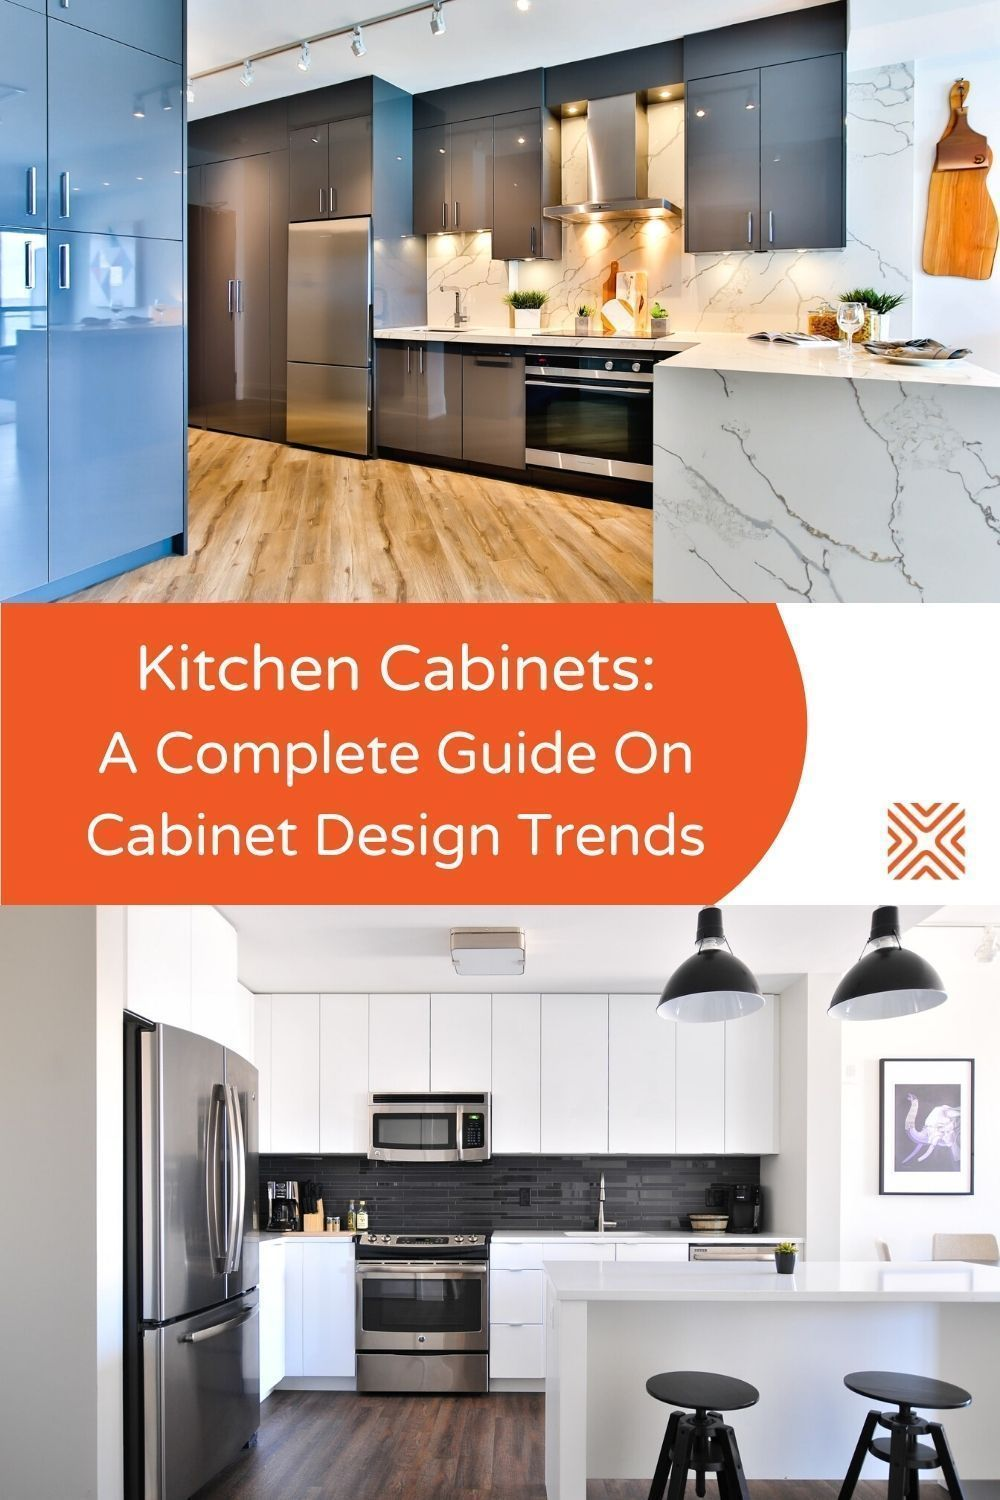 Kitchen Cabinet Trends A Complete Guide For You In 2020 Kitchen Cabinet Trends Kitchen Cabinets Beautiful Kitchen Cabinets